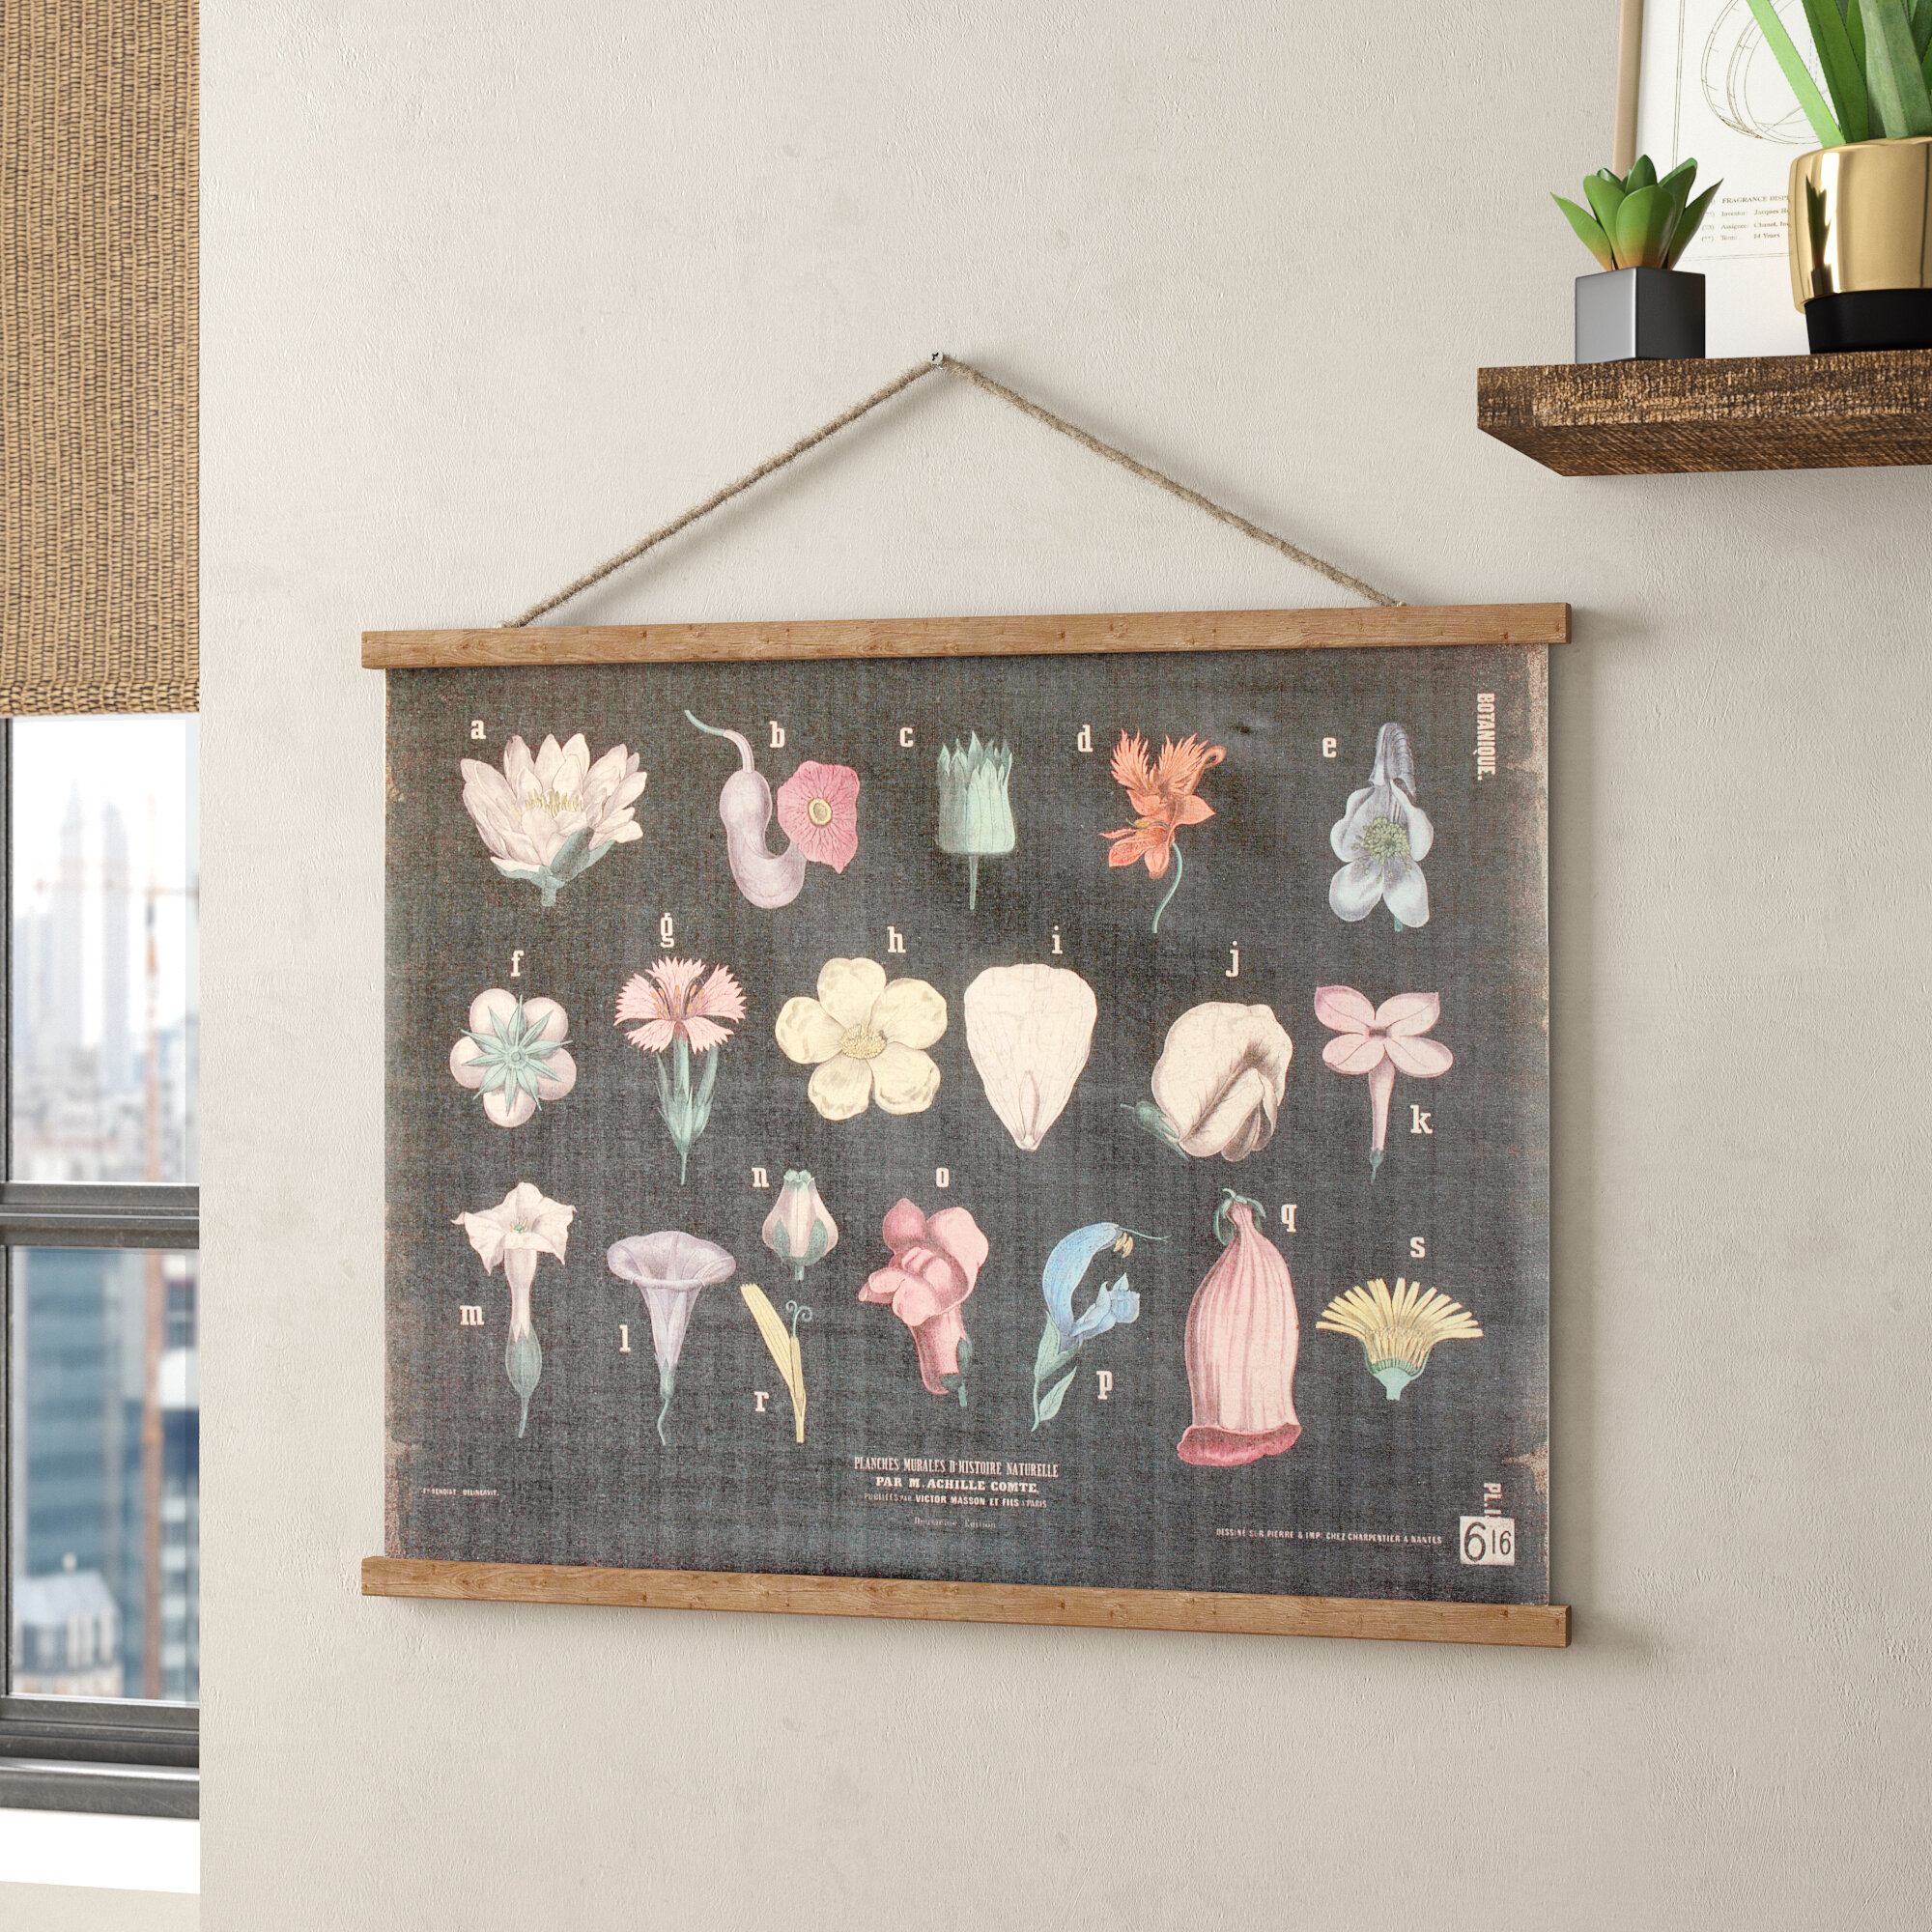 Charlton Home Blended Fabric Hohl Wall Hanging With Rod Reviews Wayfair